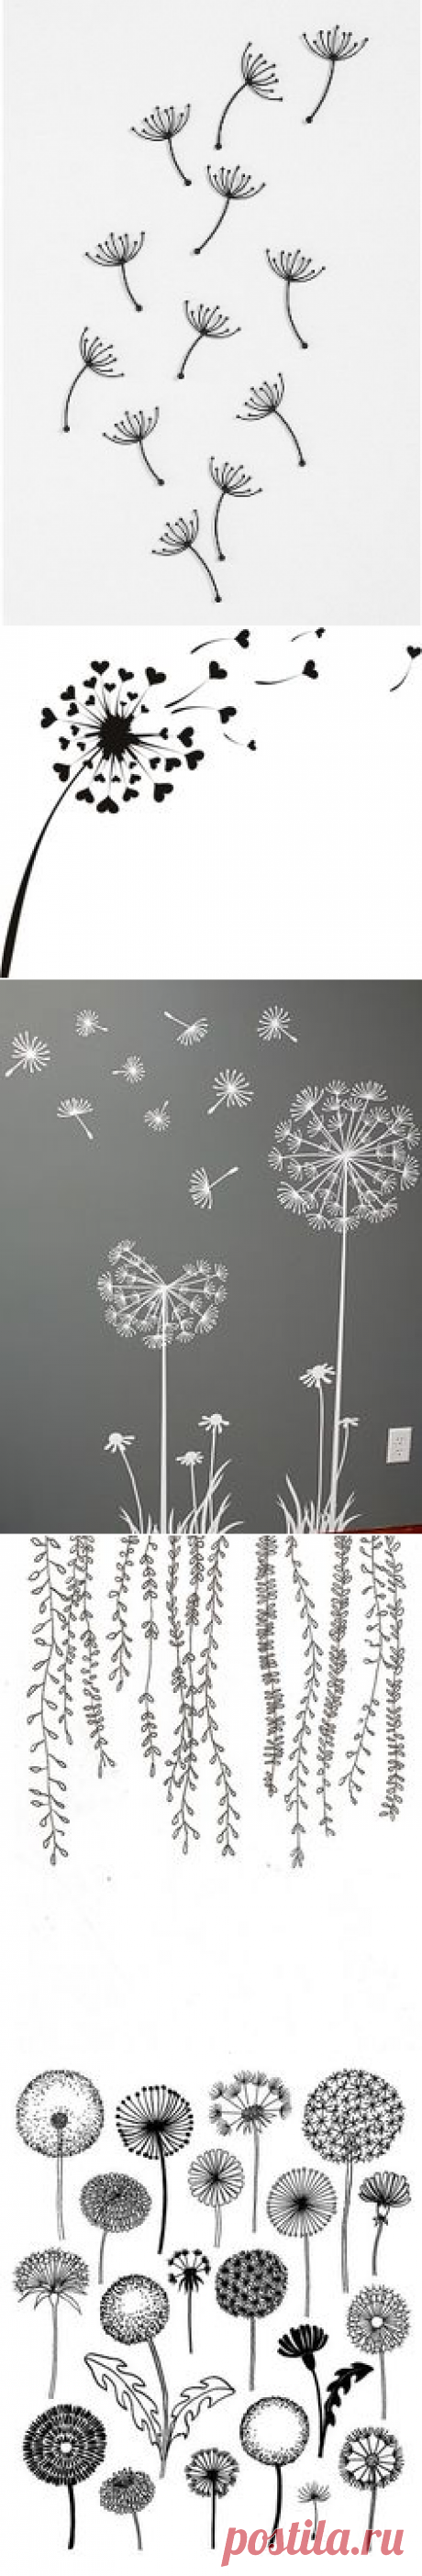 Pottery art, Wall decor and Dandelions on Pinterest